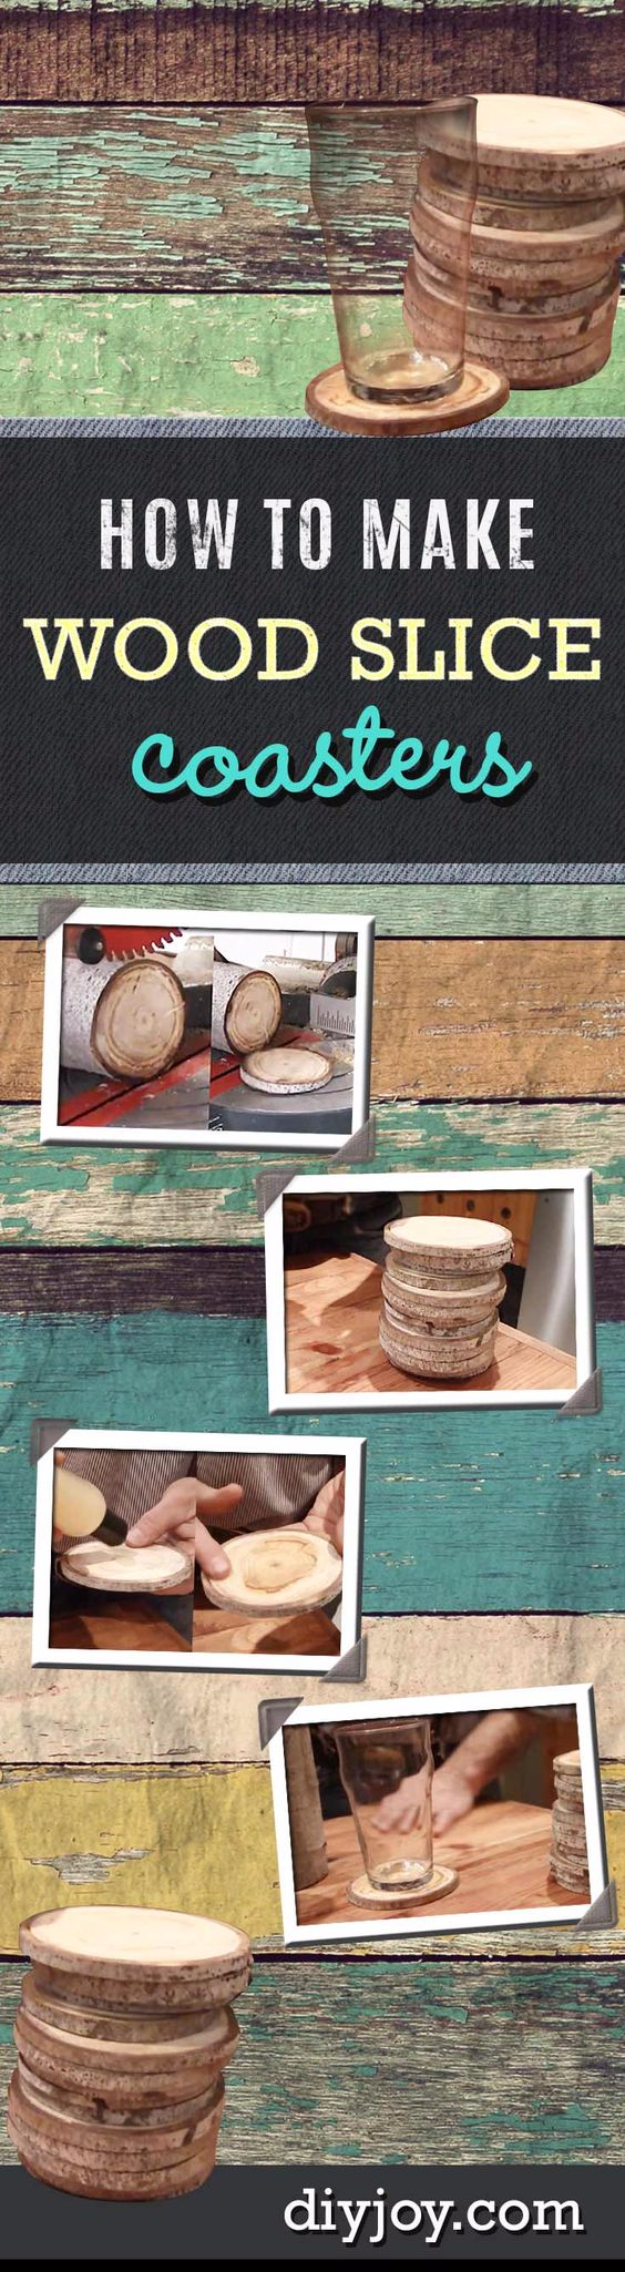 DIY Coasters - DIY Coasters From Wood Slices - Best Quick DIY Gifts and Home Decor - Easy Step by Step Tutorials for DIY Coaster Projects - Mod Podge, Tile, Painted, Photo and Sewing Projects - Cool Christmas Presents for Him and Her - DIY Projects and Crafts by DIY Joy